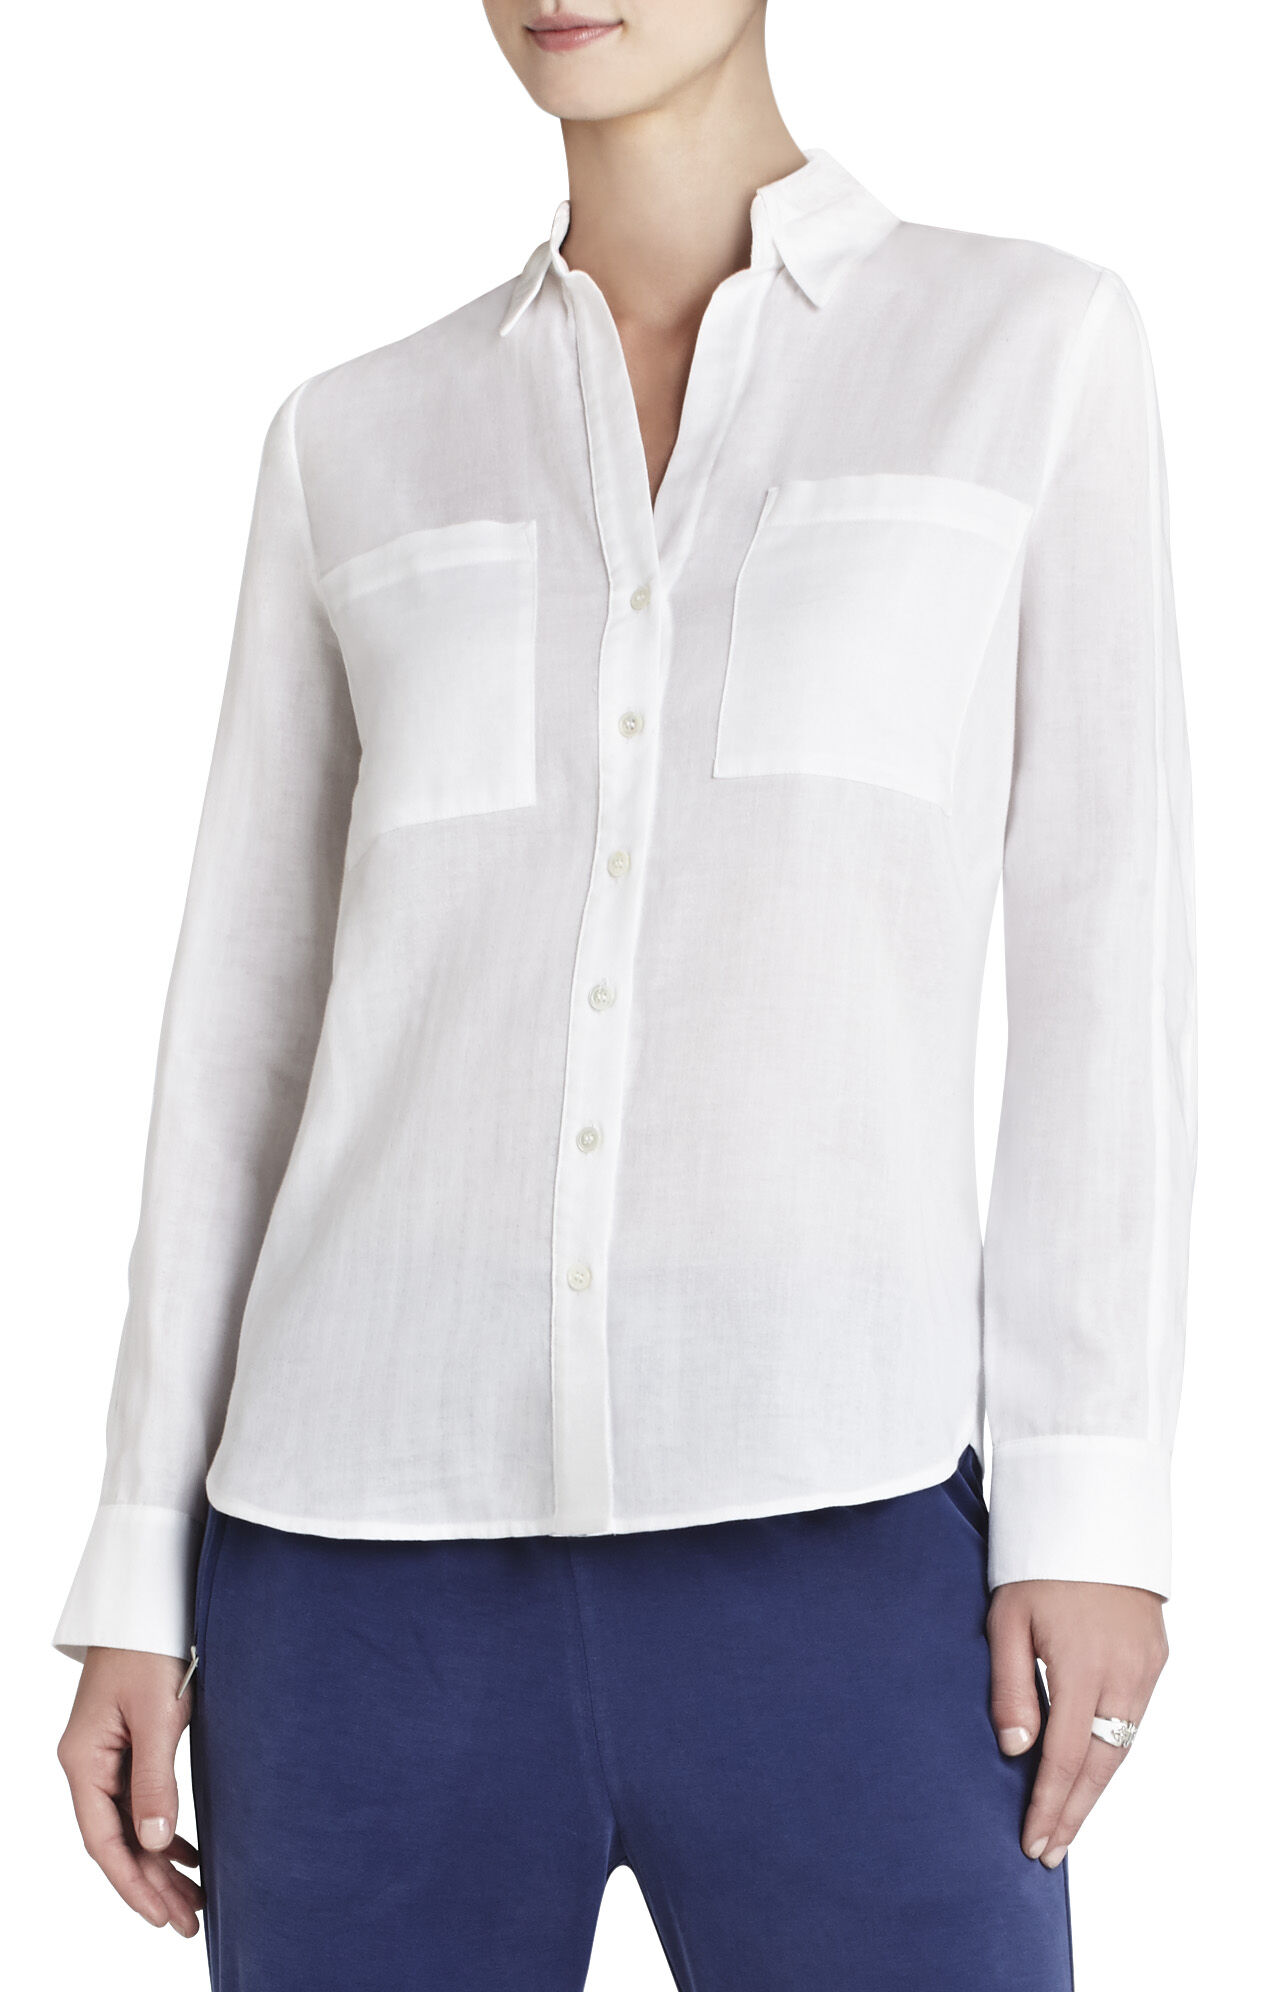 Leony Long-Sleeve Stitched-Collar Shirt